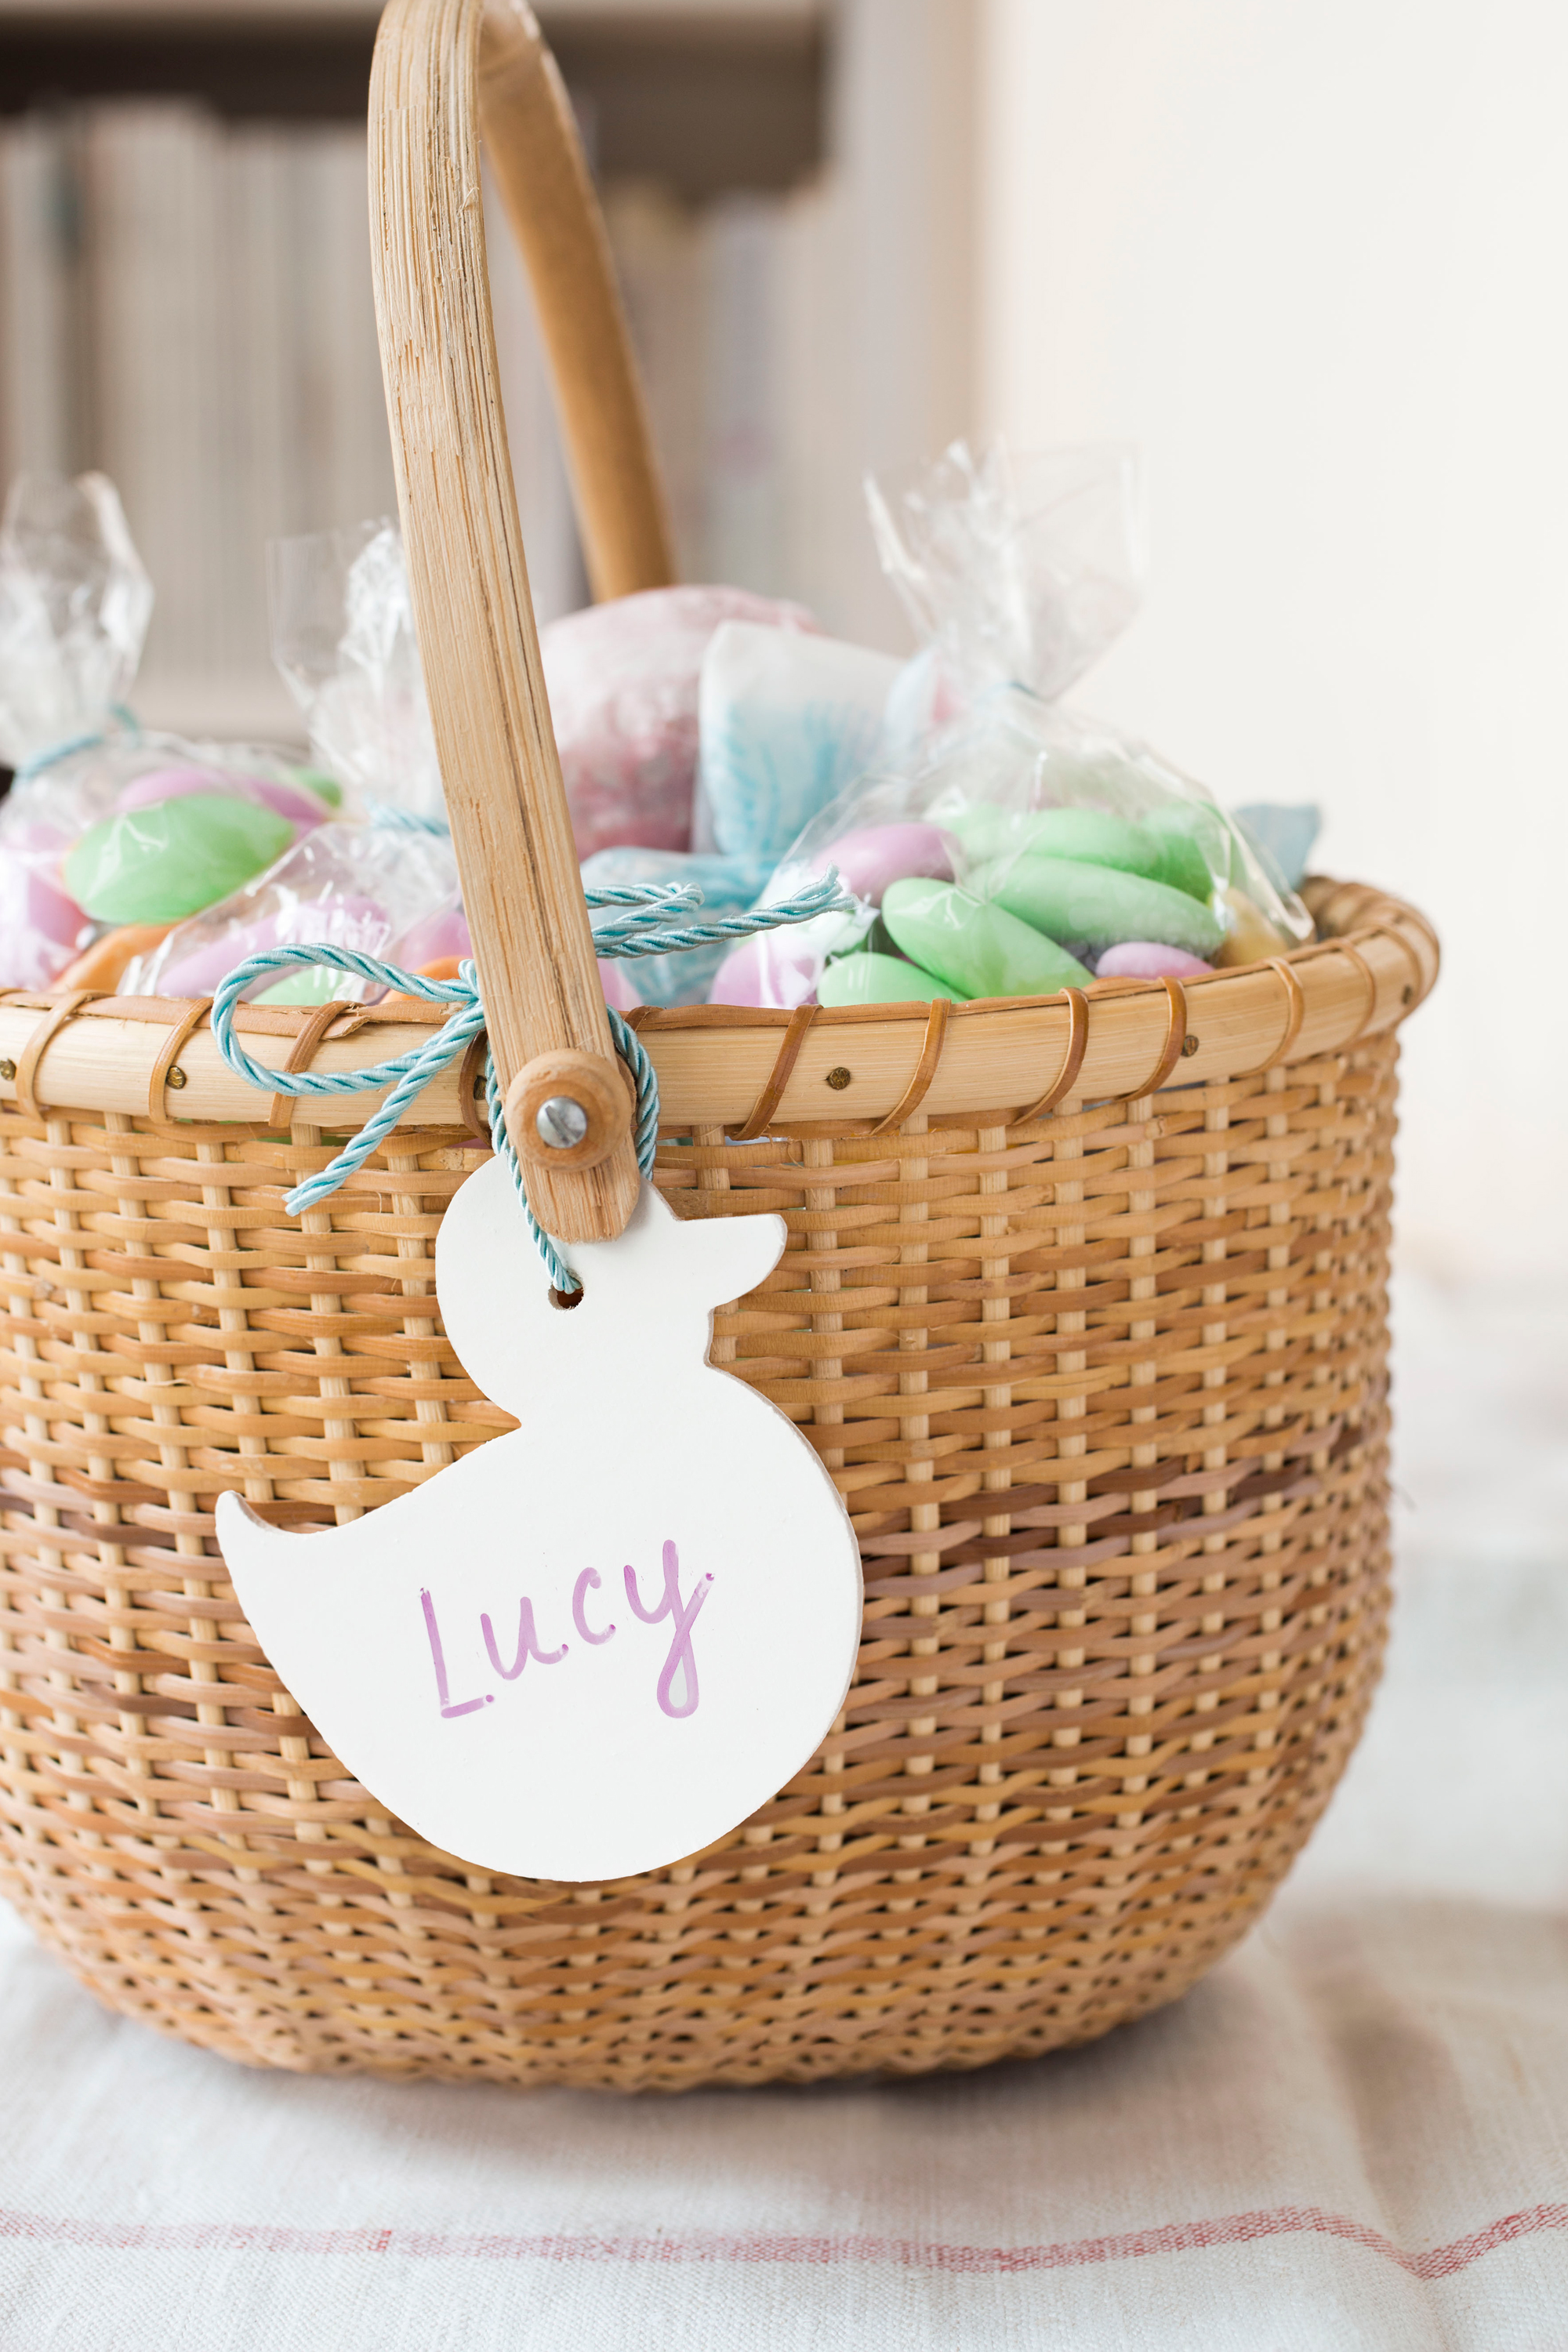 60 easy easter crafts ideas for easter diy decorations gifts 60 easy easter crafts ideas for easter diy decorations gifts country living negle Images